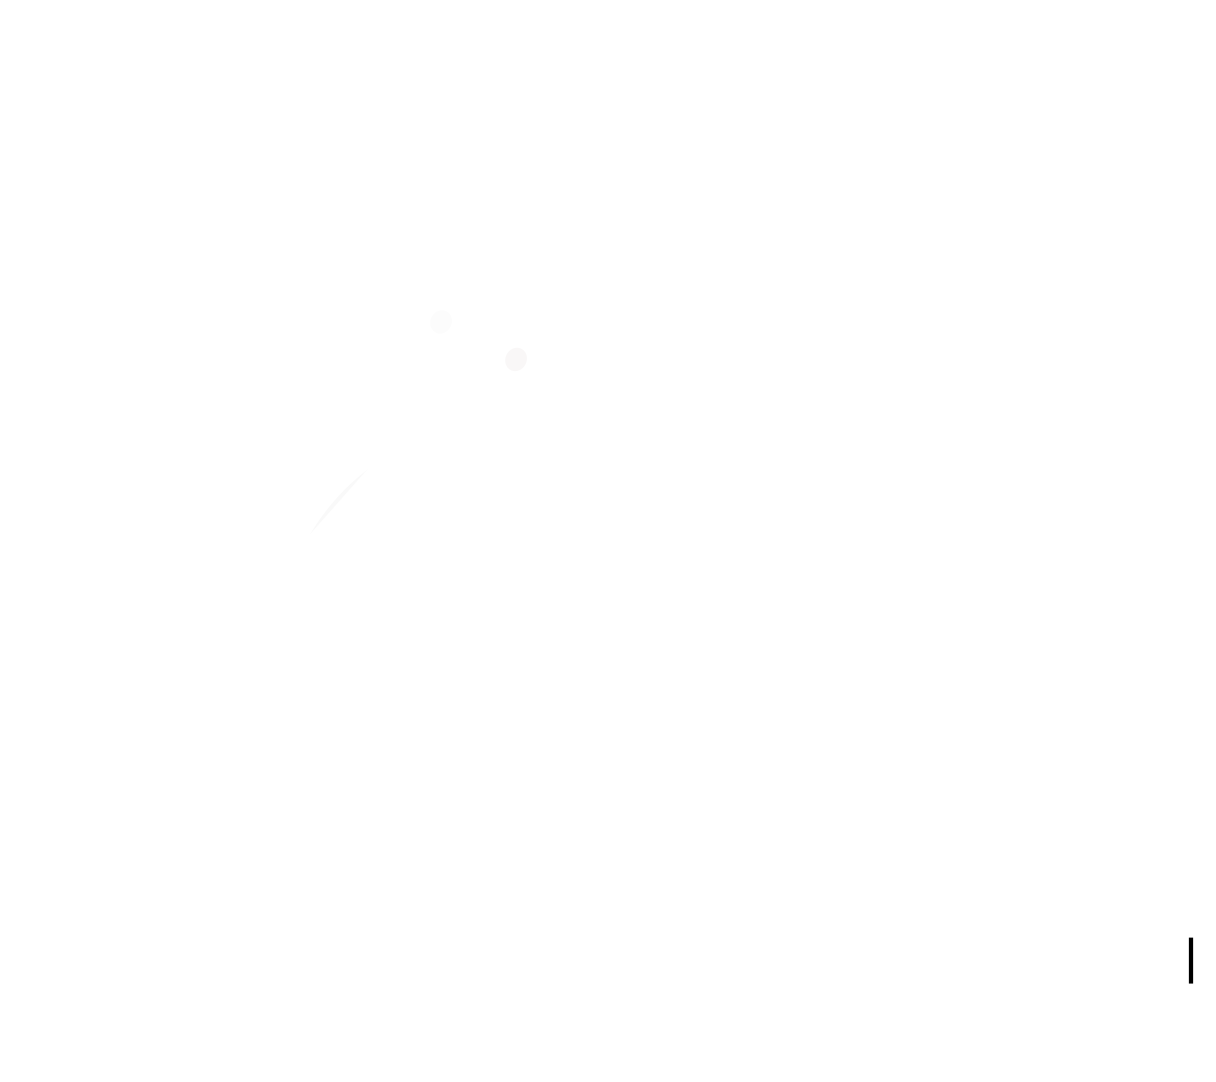 The Chef's Advice